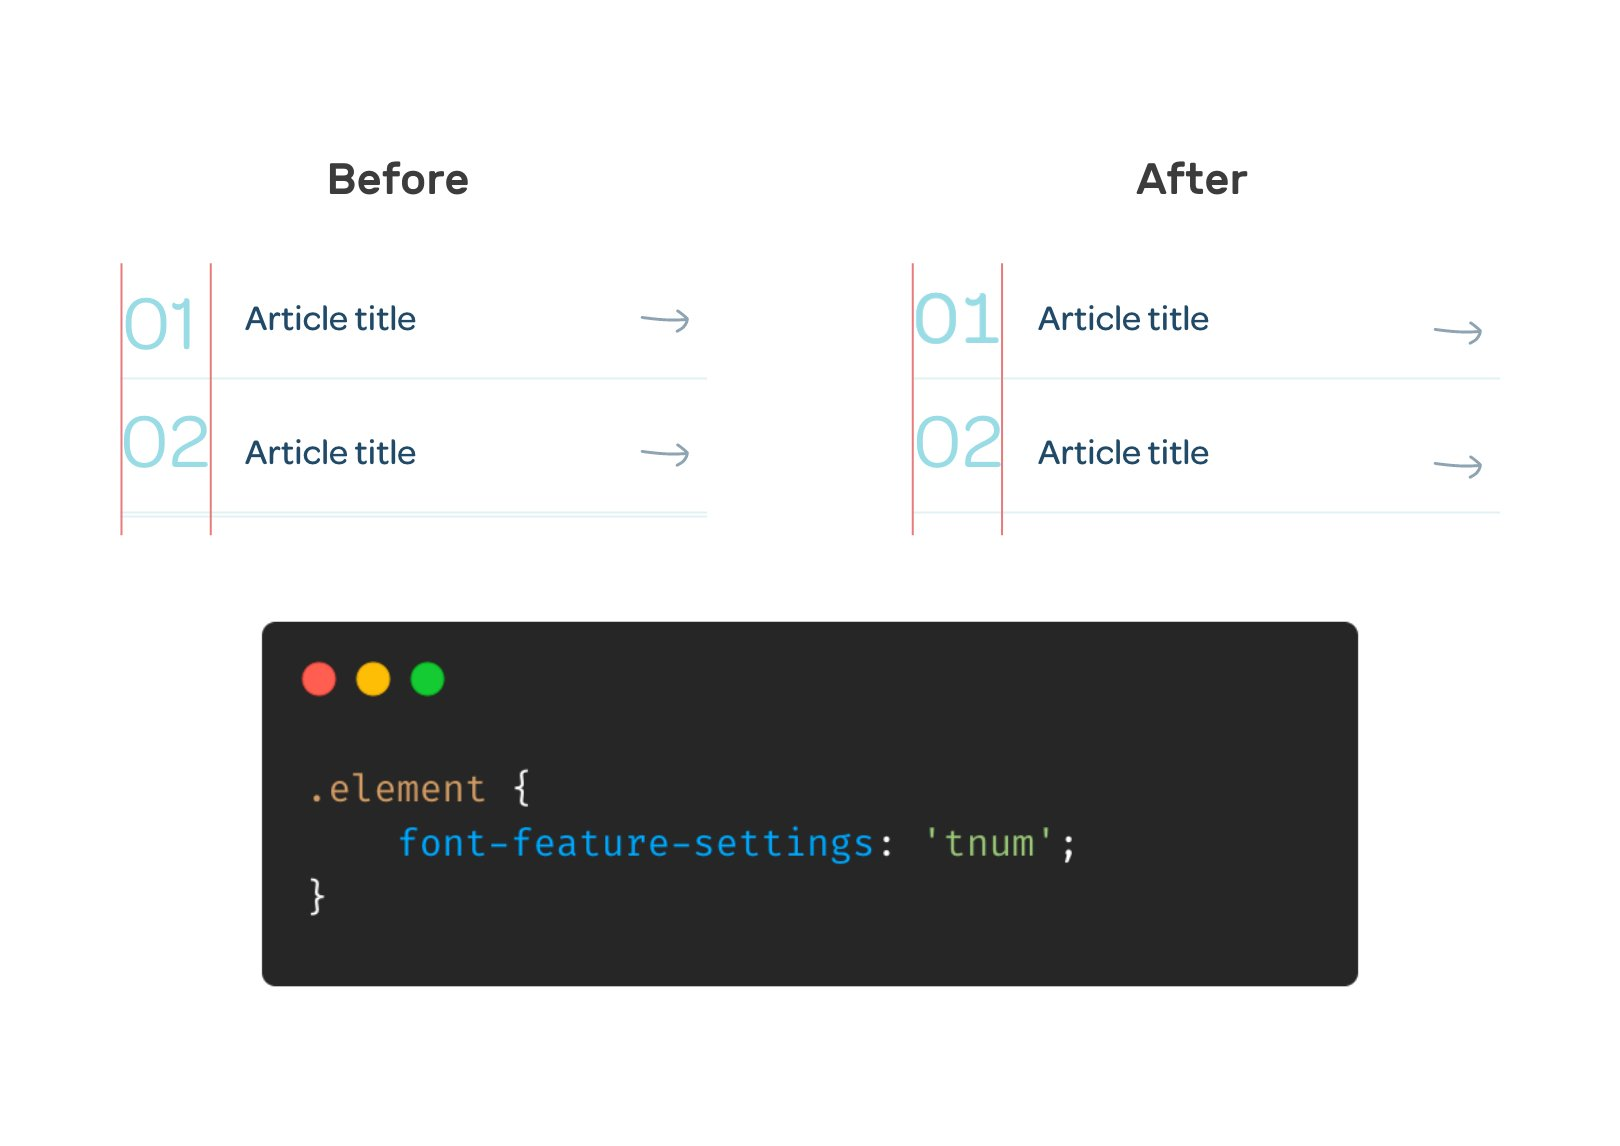 CSS is magic 👌  On the left, I have an ordered list of articles. I want the numbers to be aligned.  By using `font-feature-settings: 'tnum'`, the browser enables monospaced numbers. With that, the numbers are perfectly aligned. 🥳  h/t: @piccalilli_ https://t.co/TFZyL0sQAU